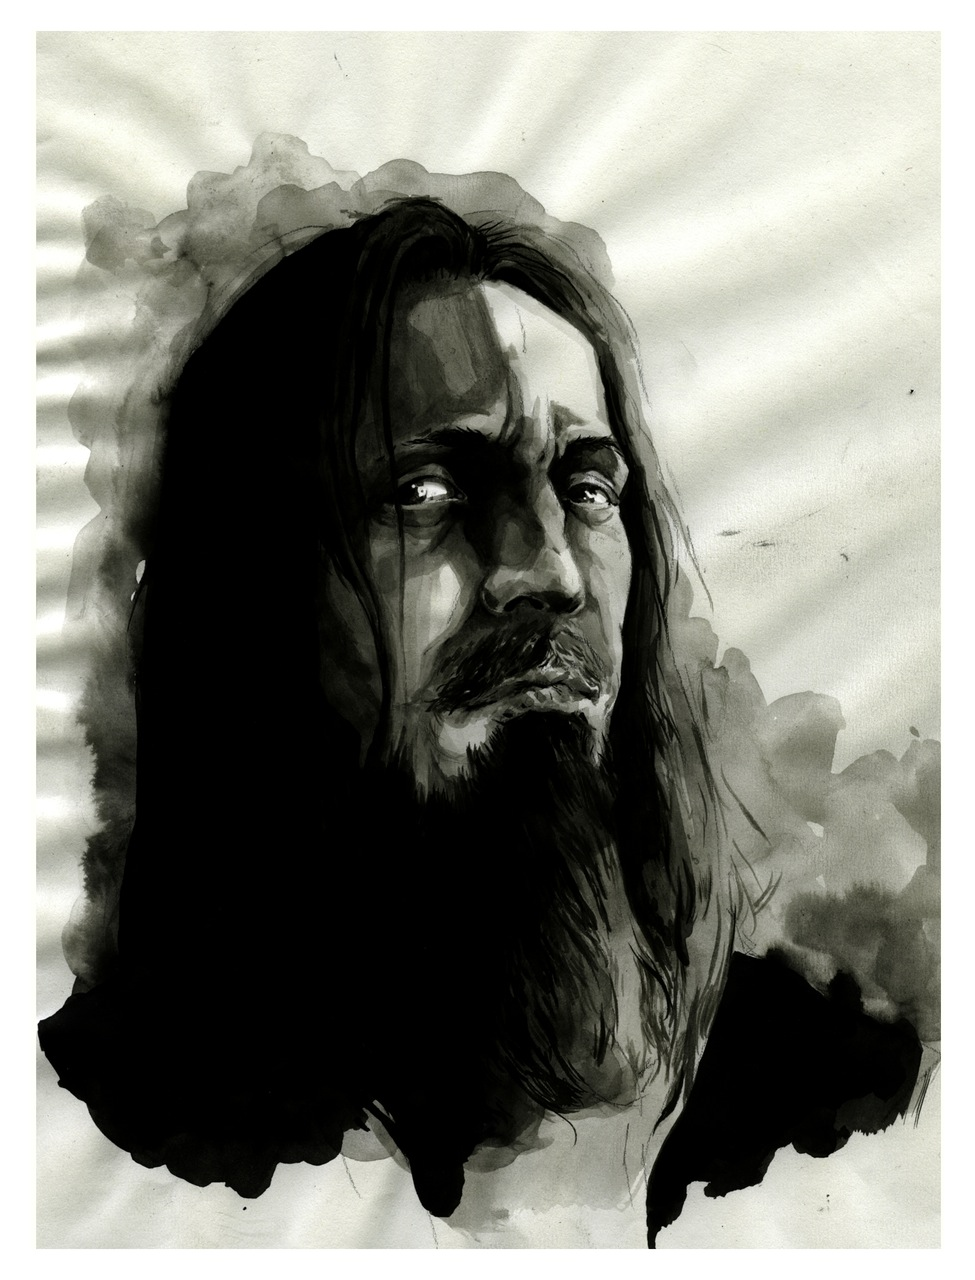 Fenriz, from Darkthrone